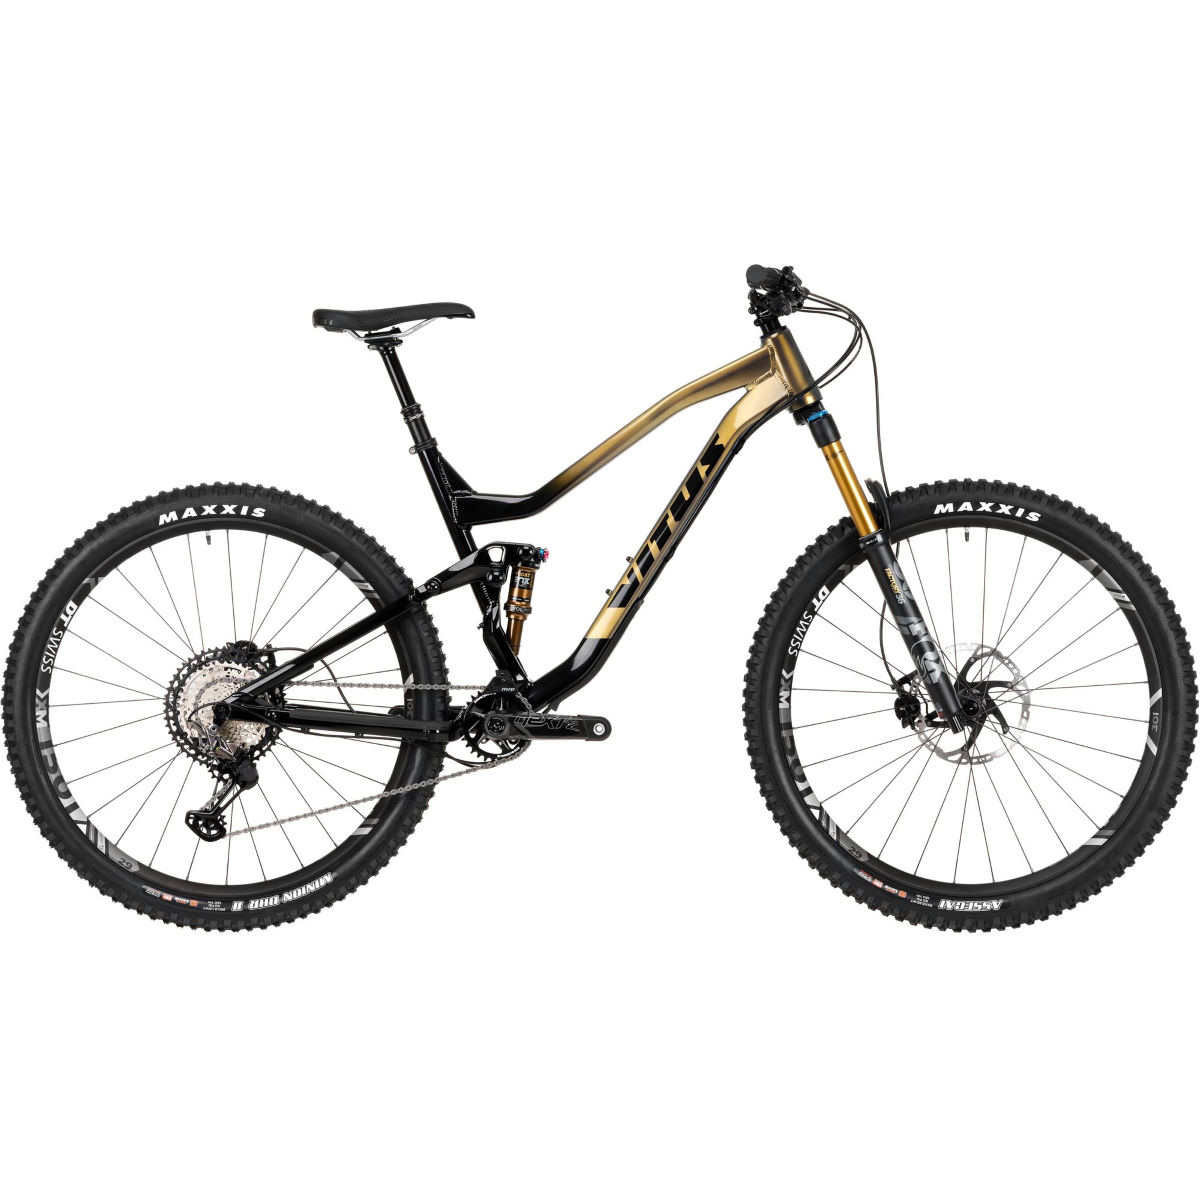 Vitus Vitus Escarpe 29 VRX Bike (XT 1x12 - 2020)   Full Suspension Mountain Bikes